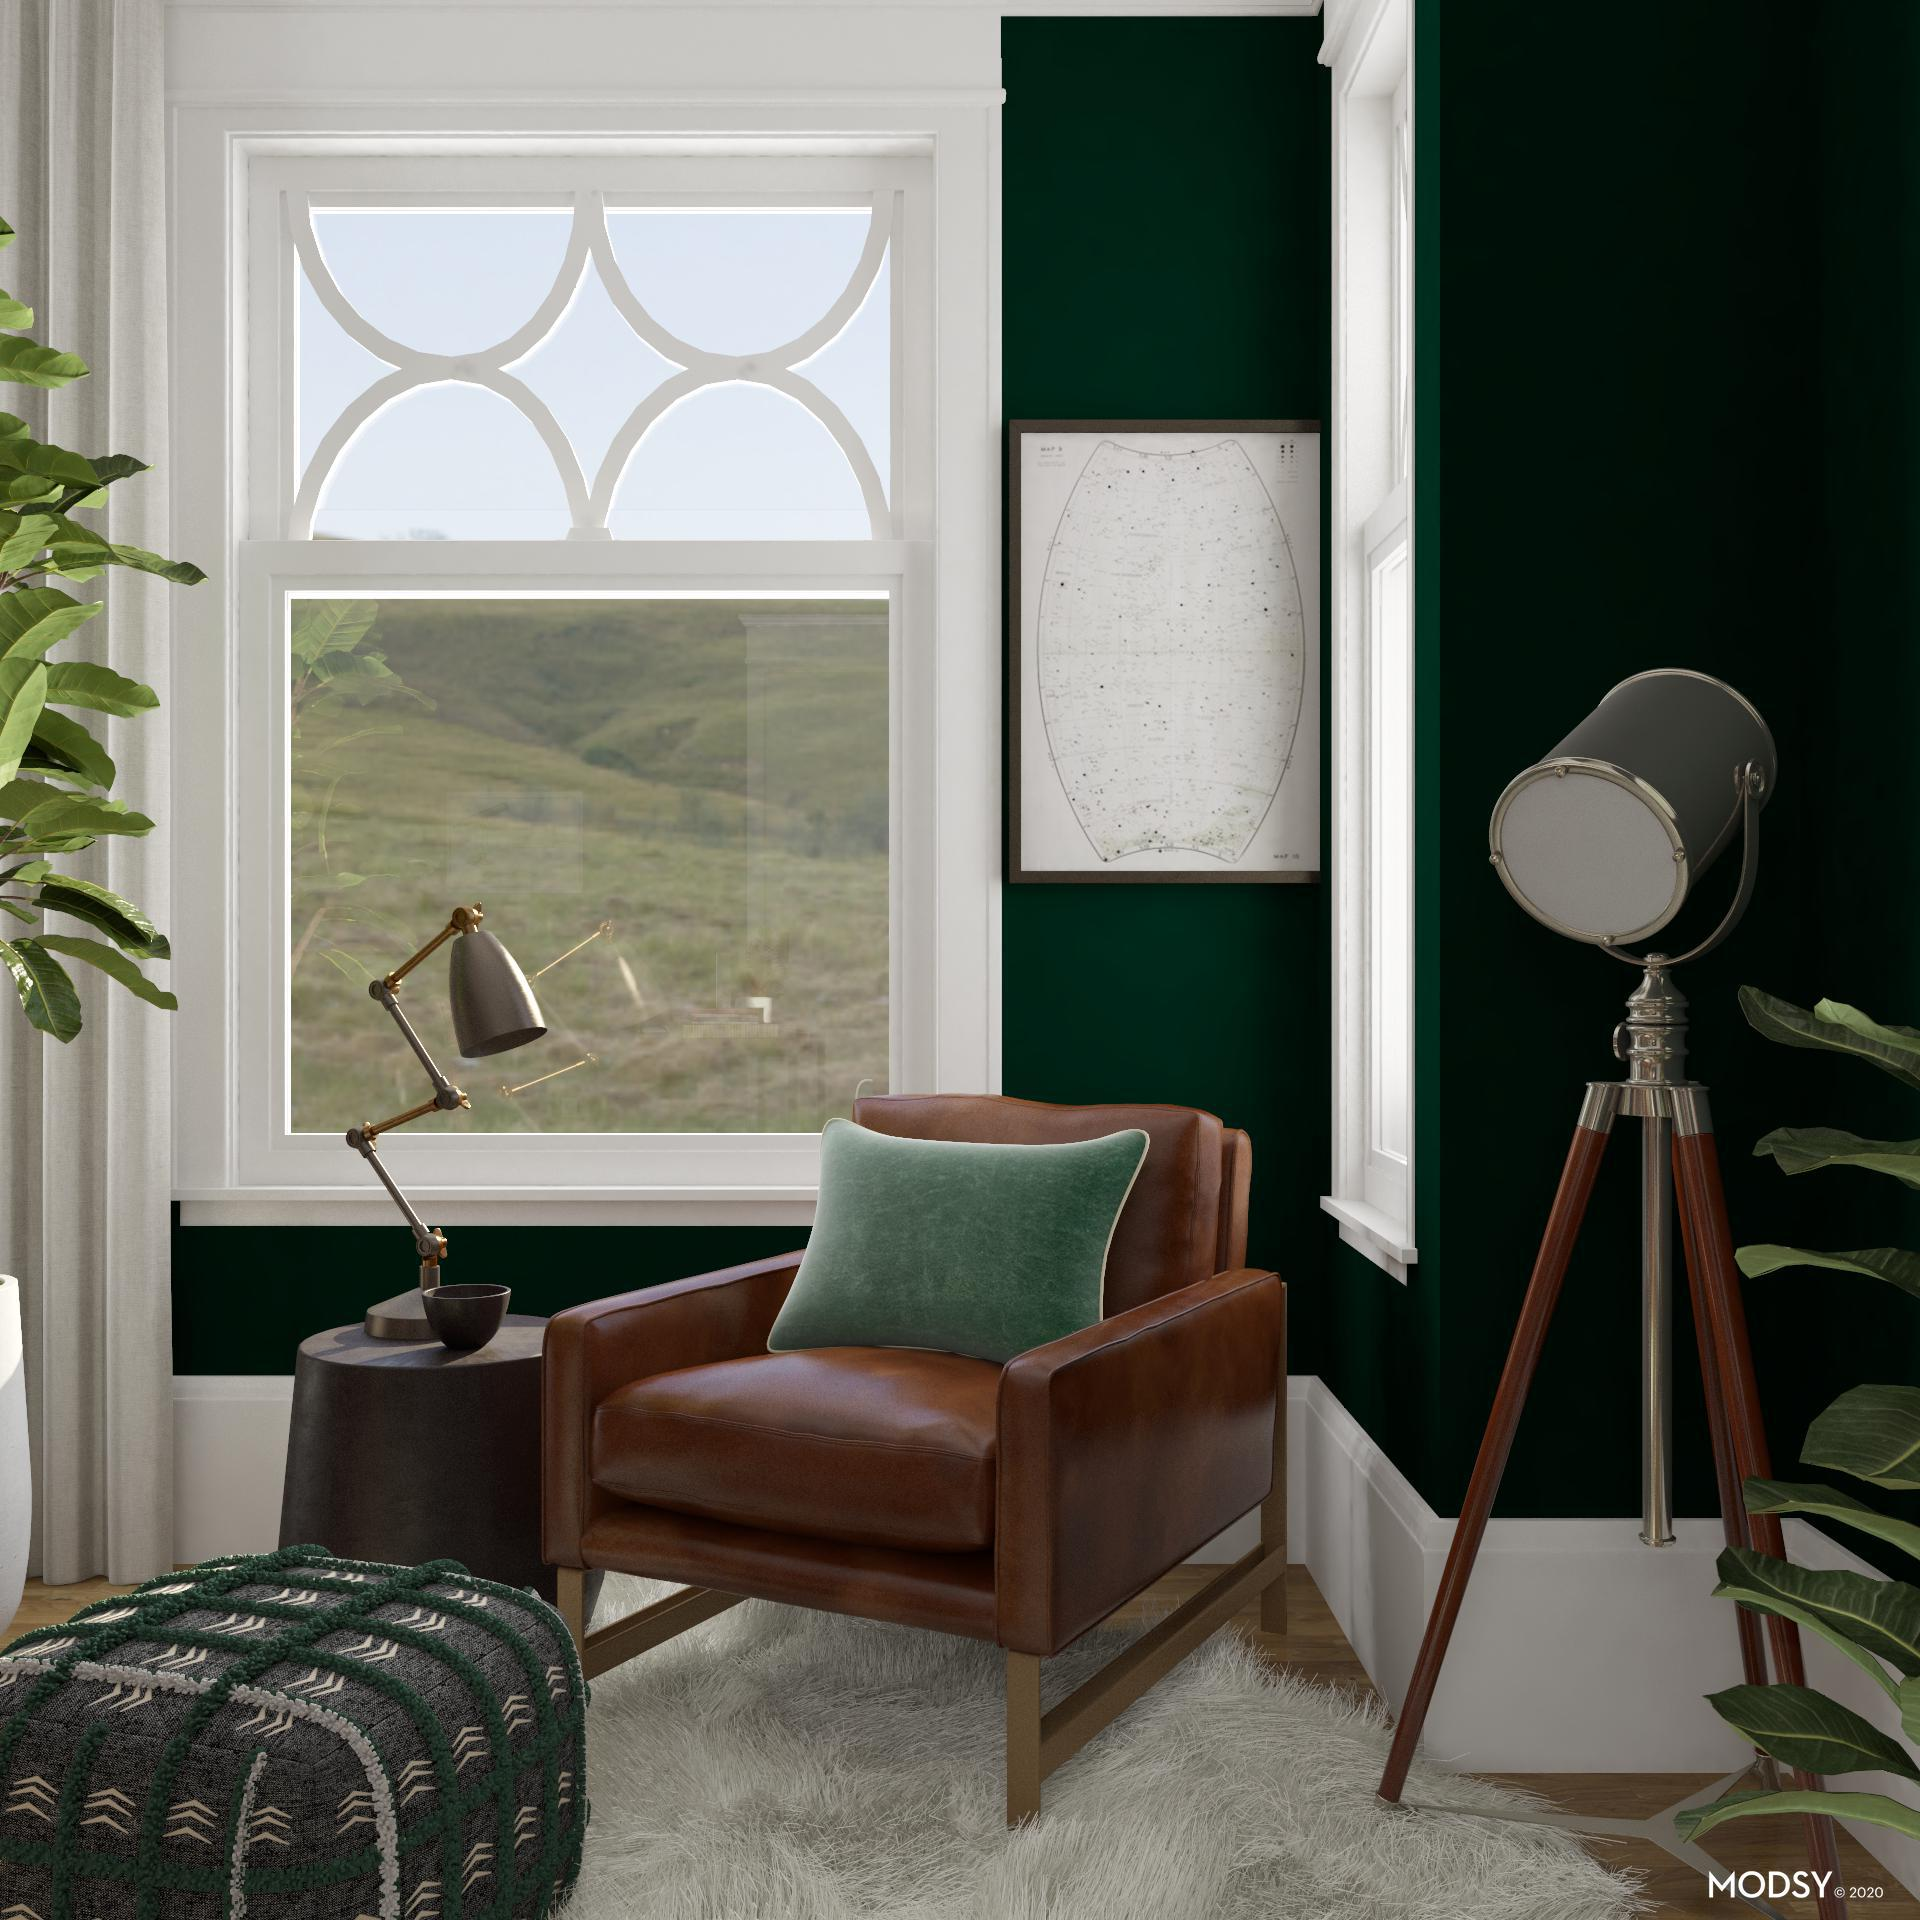 Green Home Design Ideas: Green Home Office: Cozy Nook